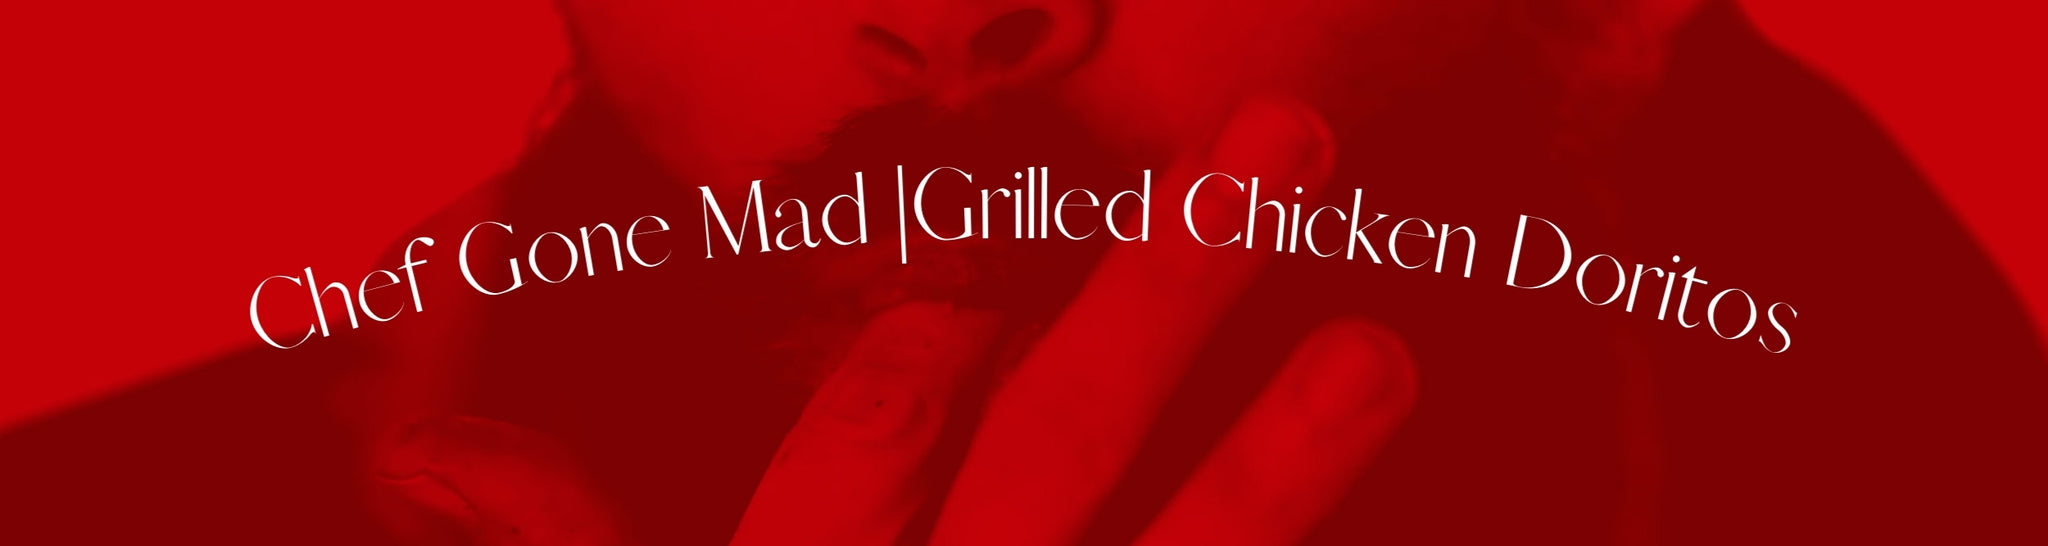 Chef Gone Mad | Grilled Chicken Doritos